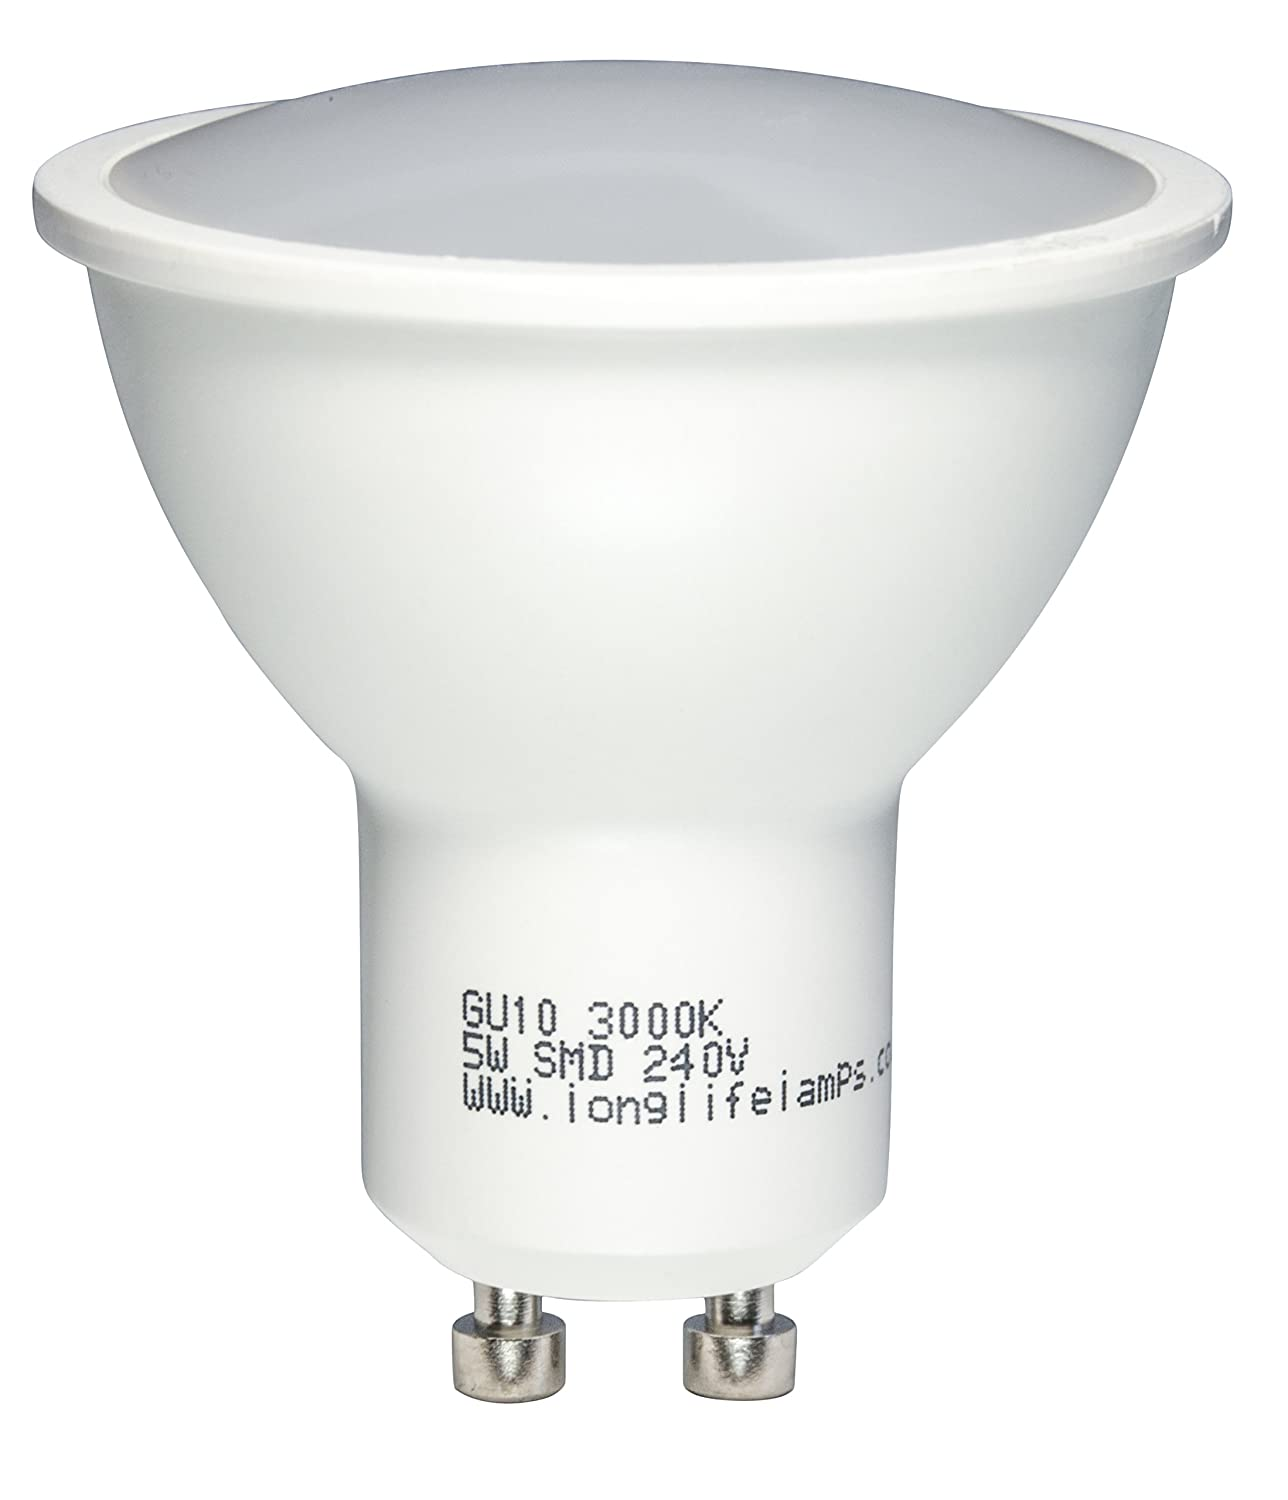 Pack of 10 5 Watt LED Replacement for GU10 50w Halogen Lamp Warm ...